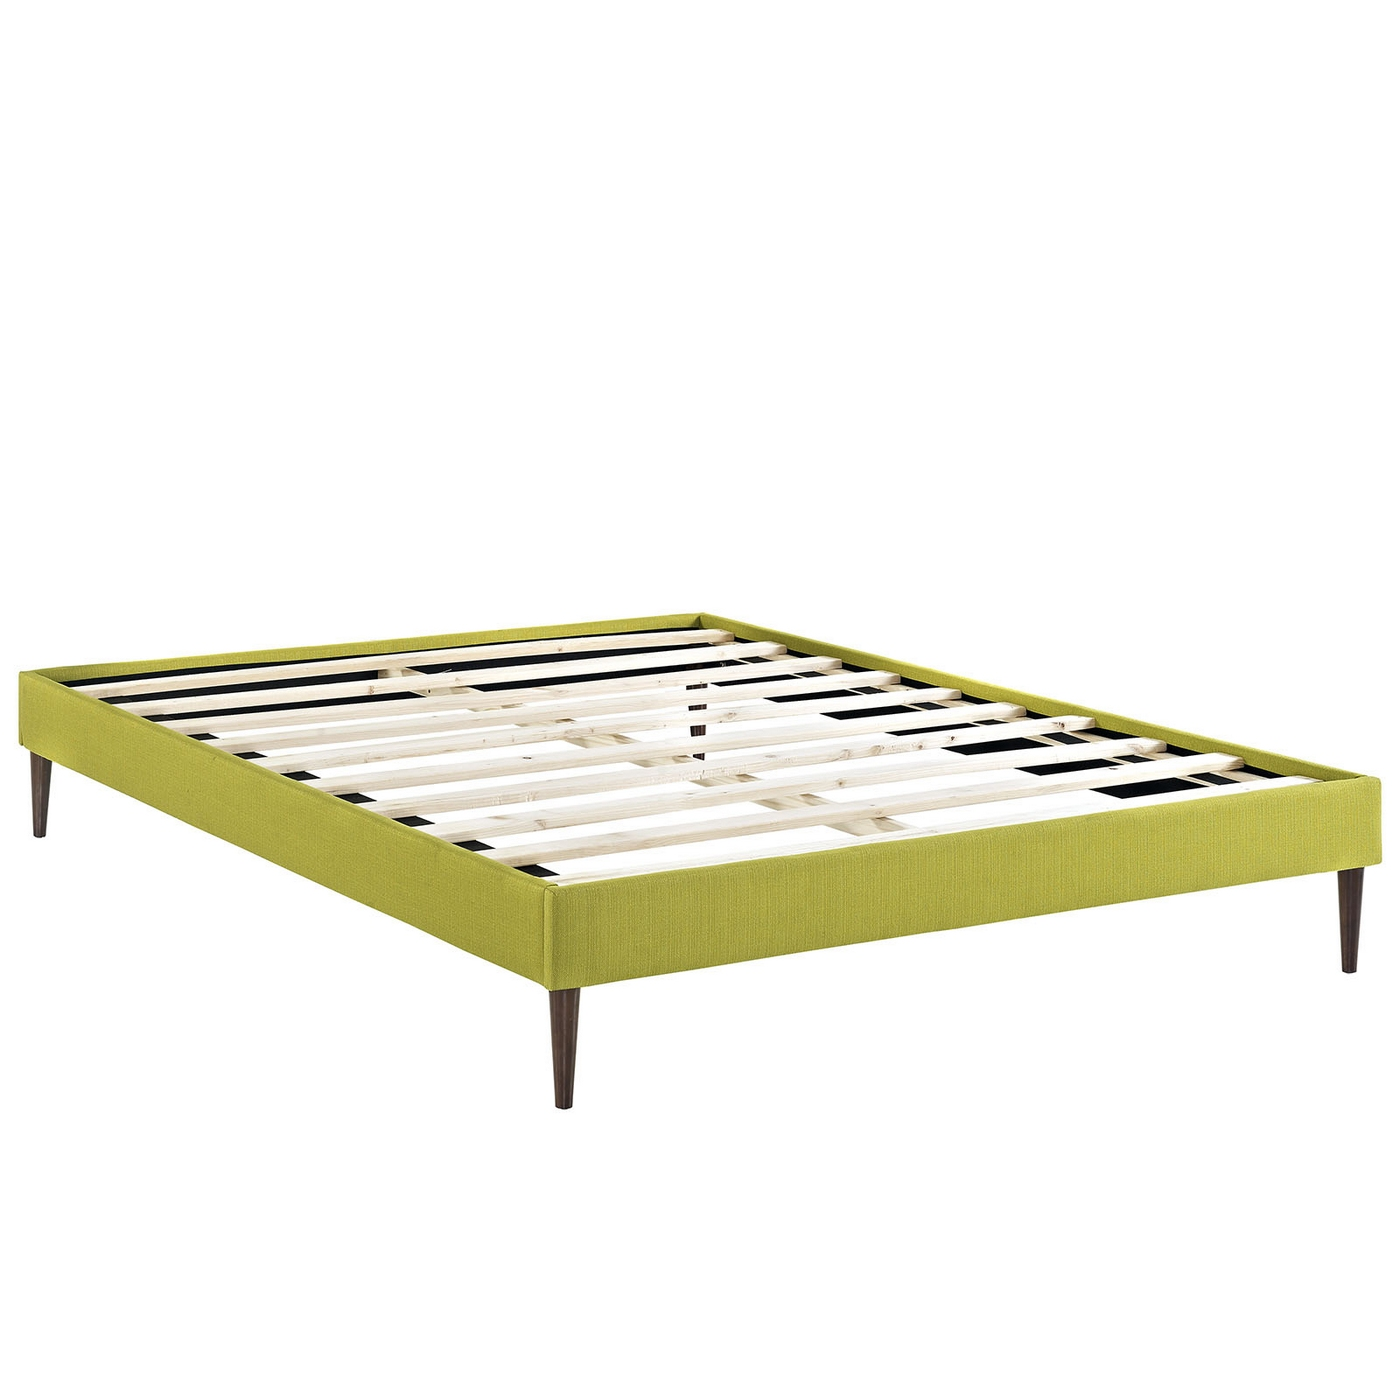 Sherry upholstered fabric full platform bed frame wheatgrass Full bed frames